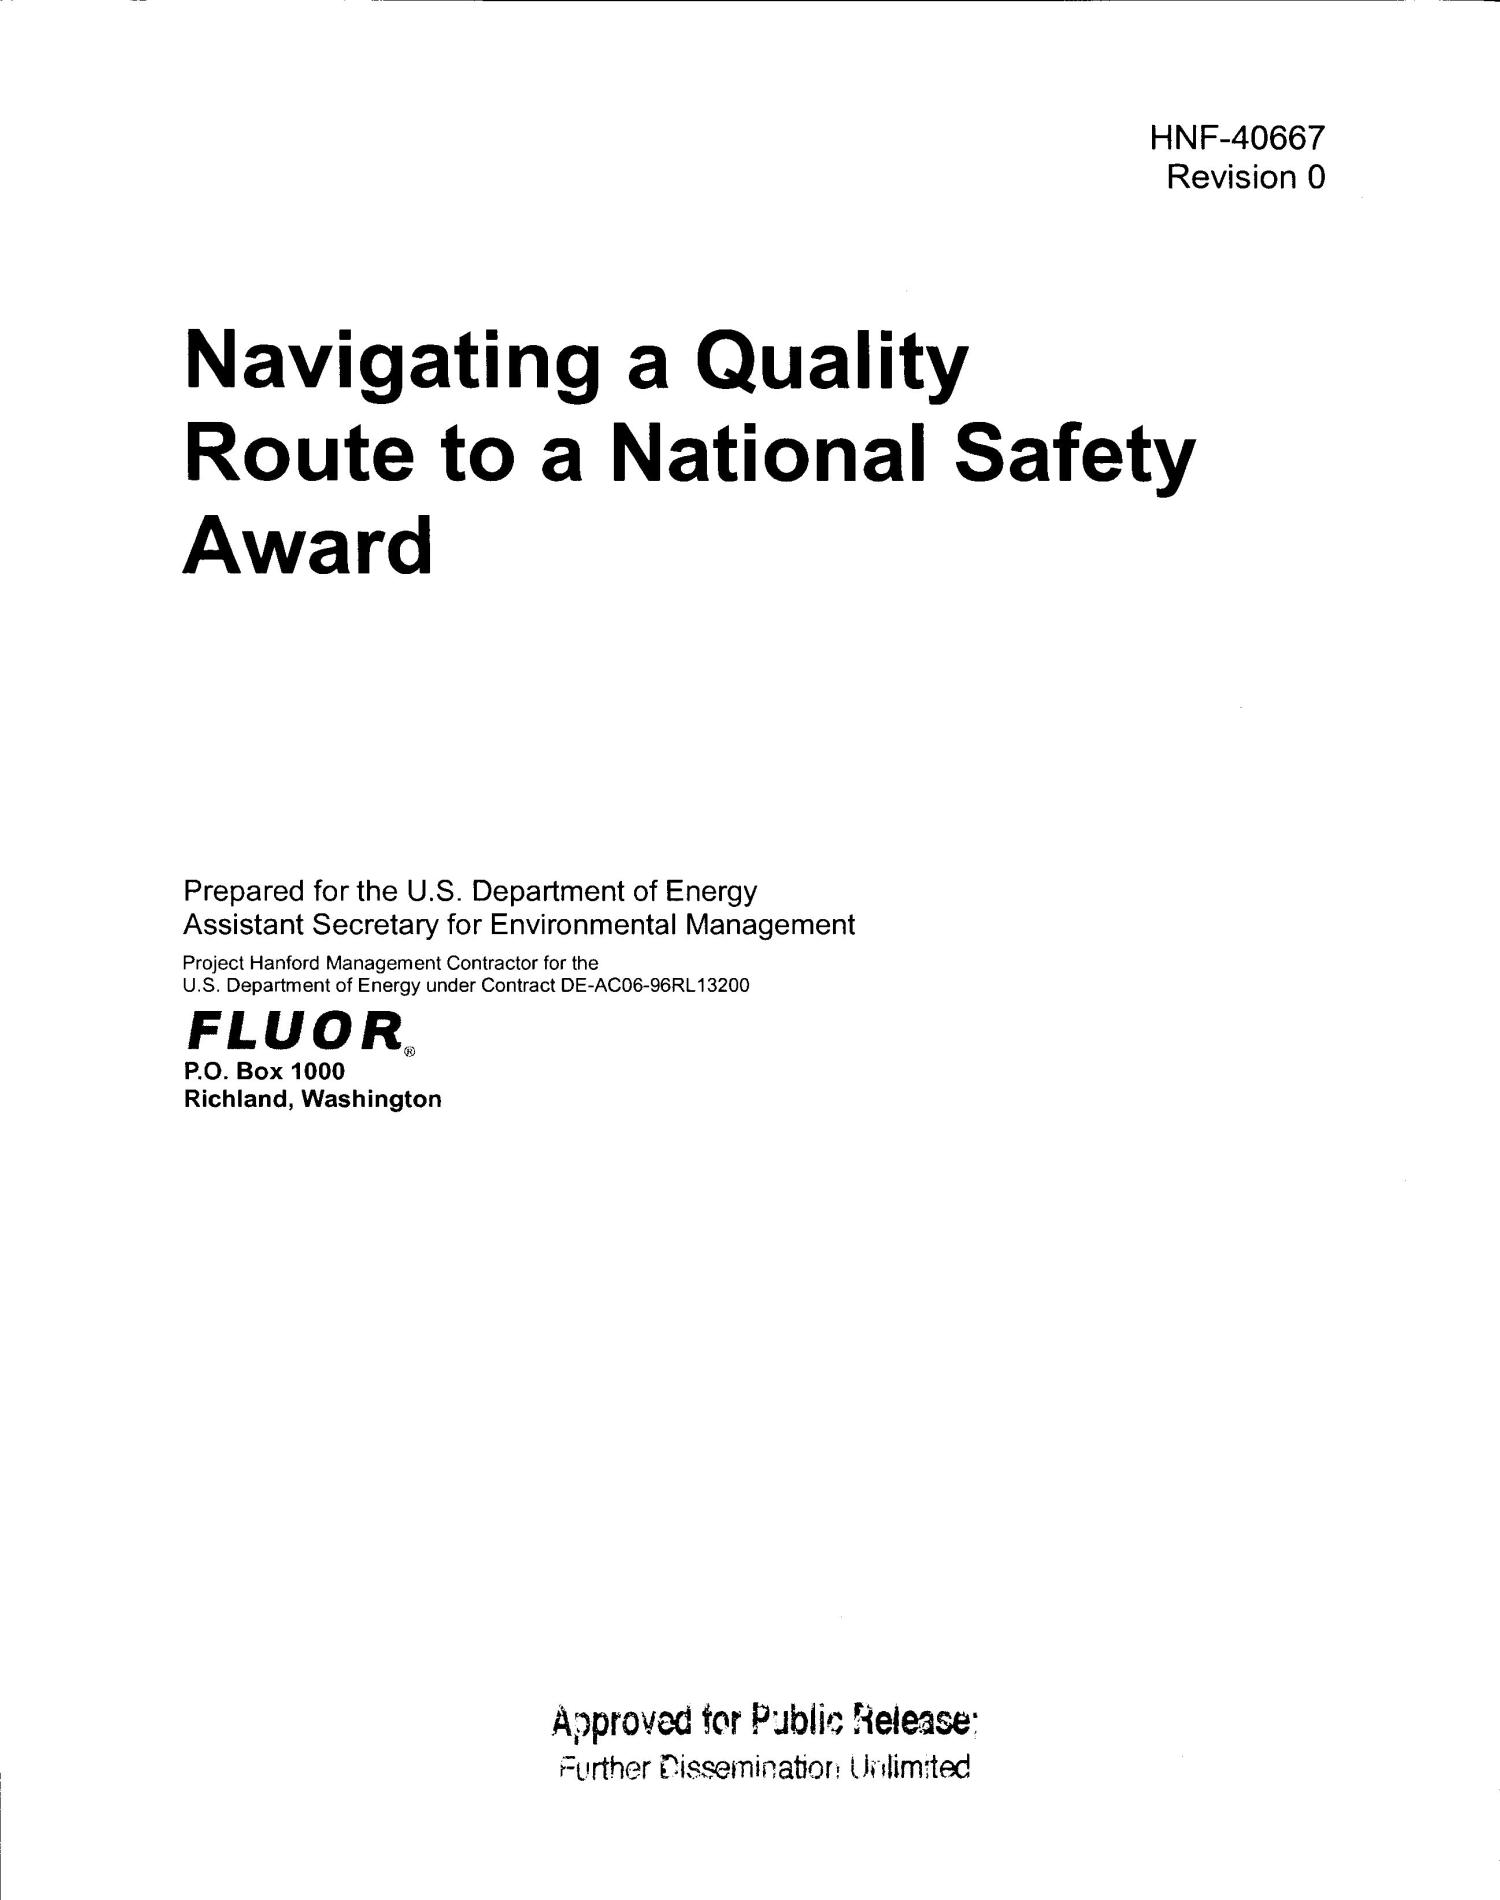 NAVIGATING A QUALITY ROUTE TO A NATIONAL SAFETY AWARD                                                                                                      [Sequence #]: 1 of 15